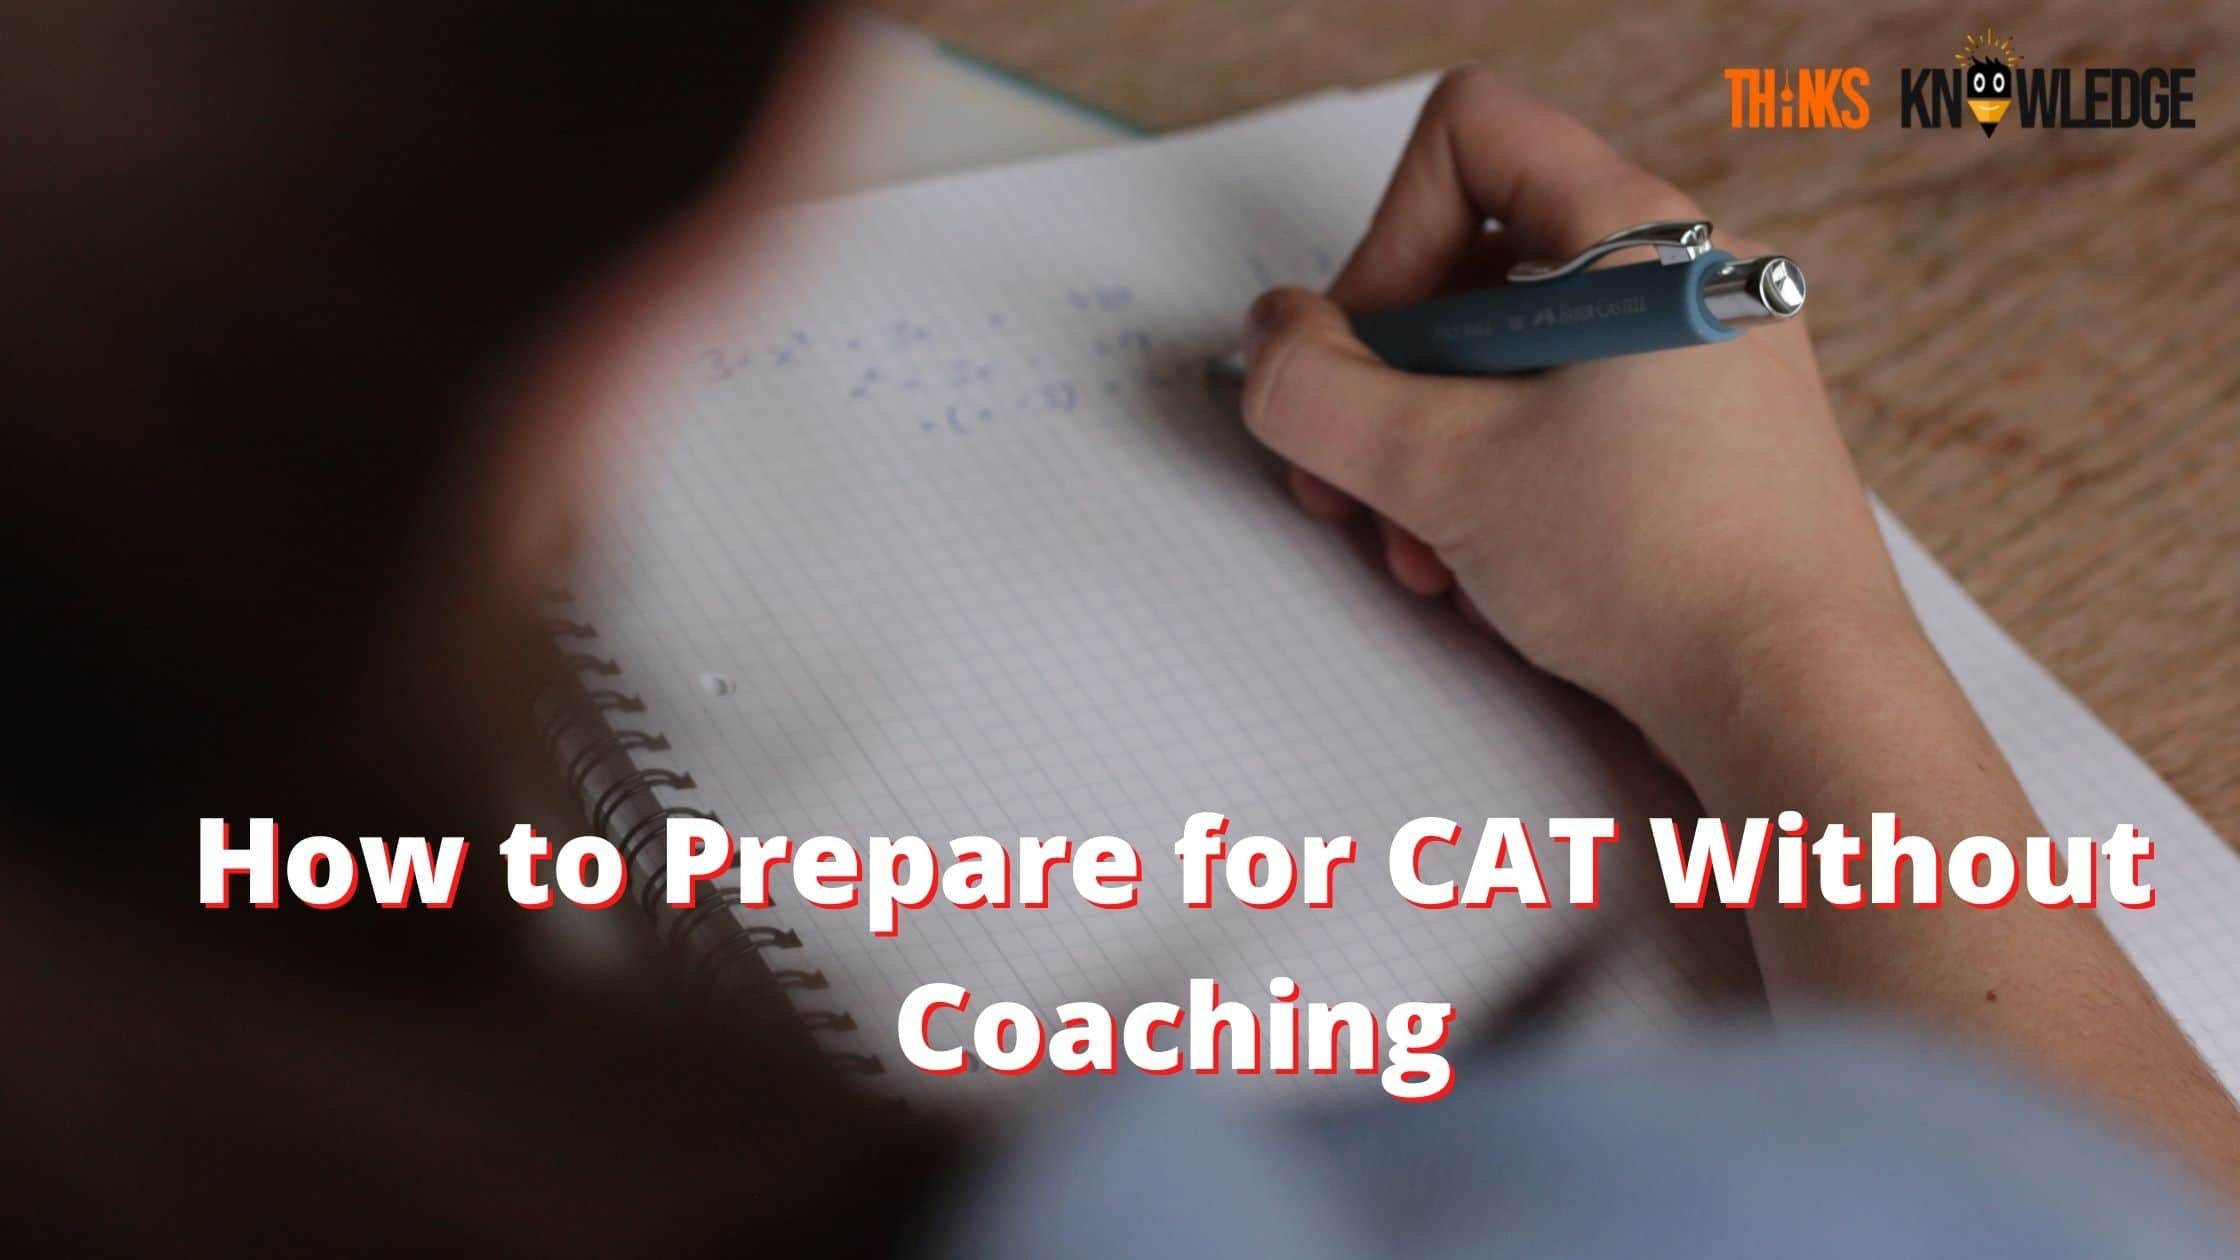 How to Prepare for CAT Without Coaching